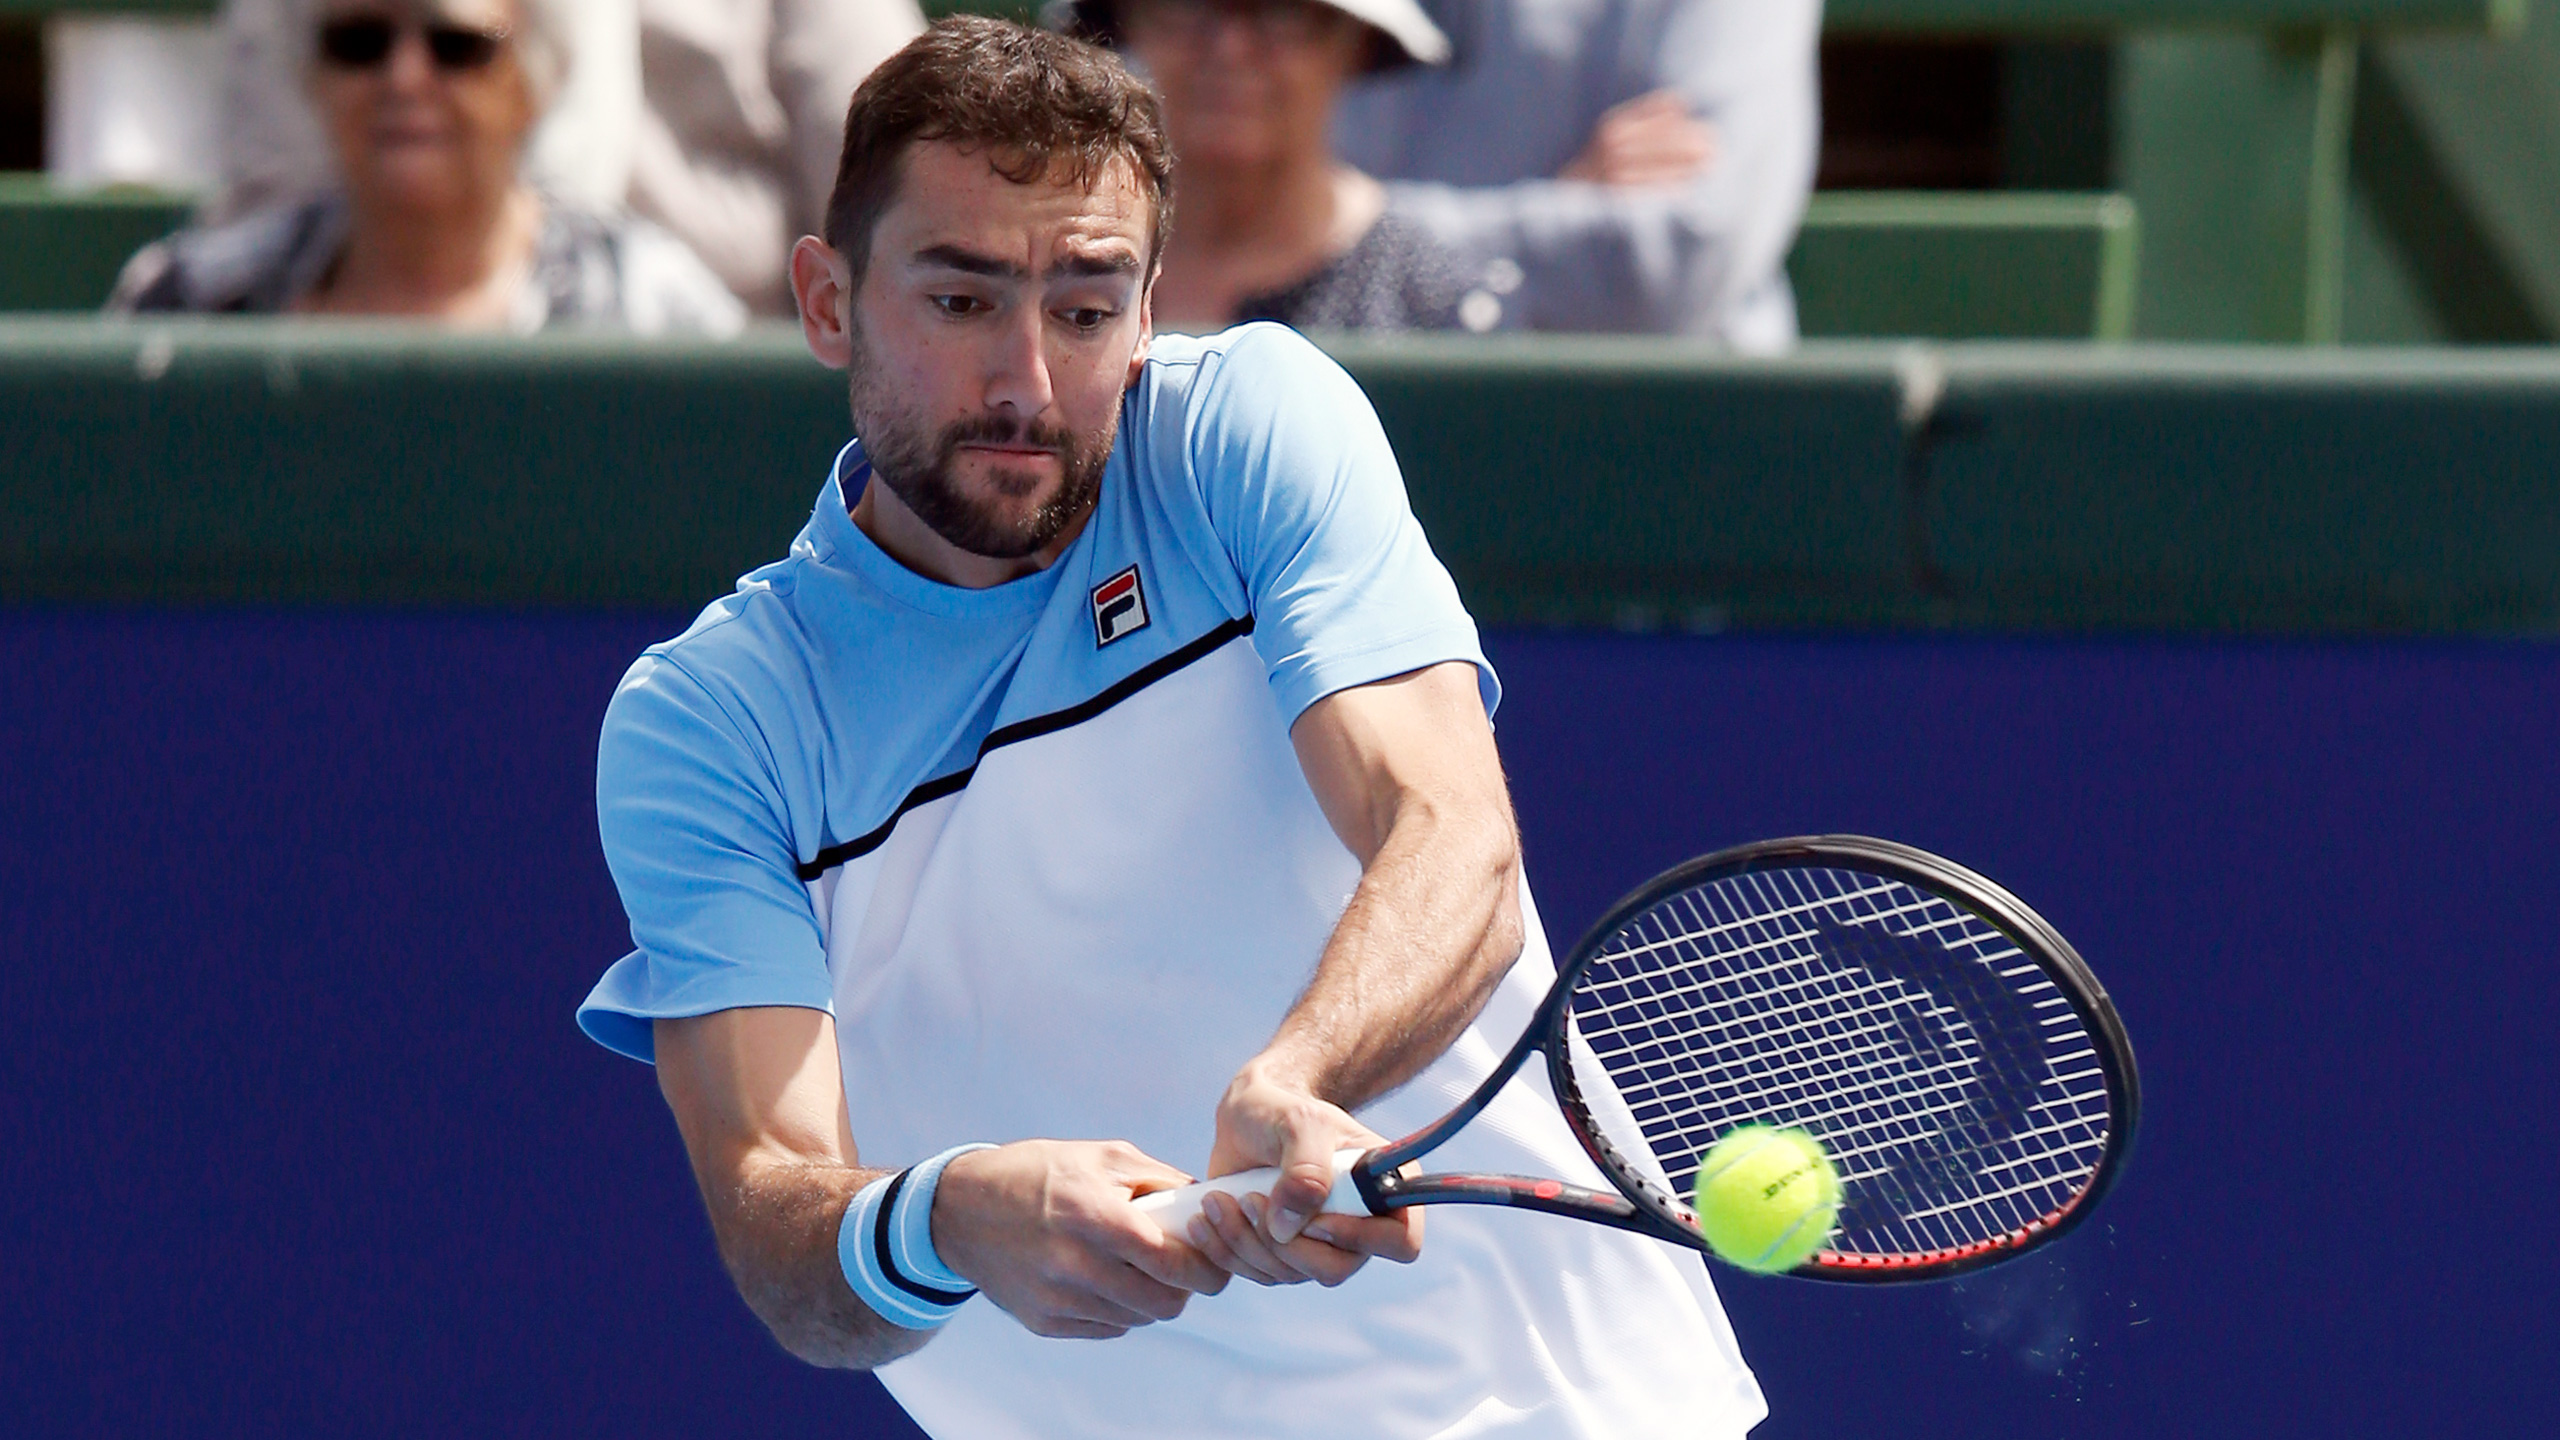 (6) Cilic vs. McDonald (Men's Second Round)